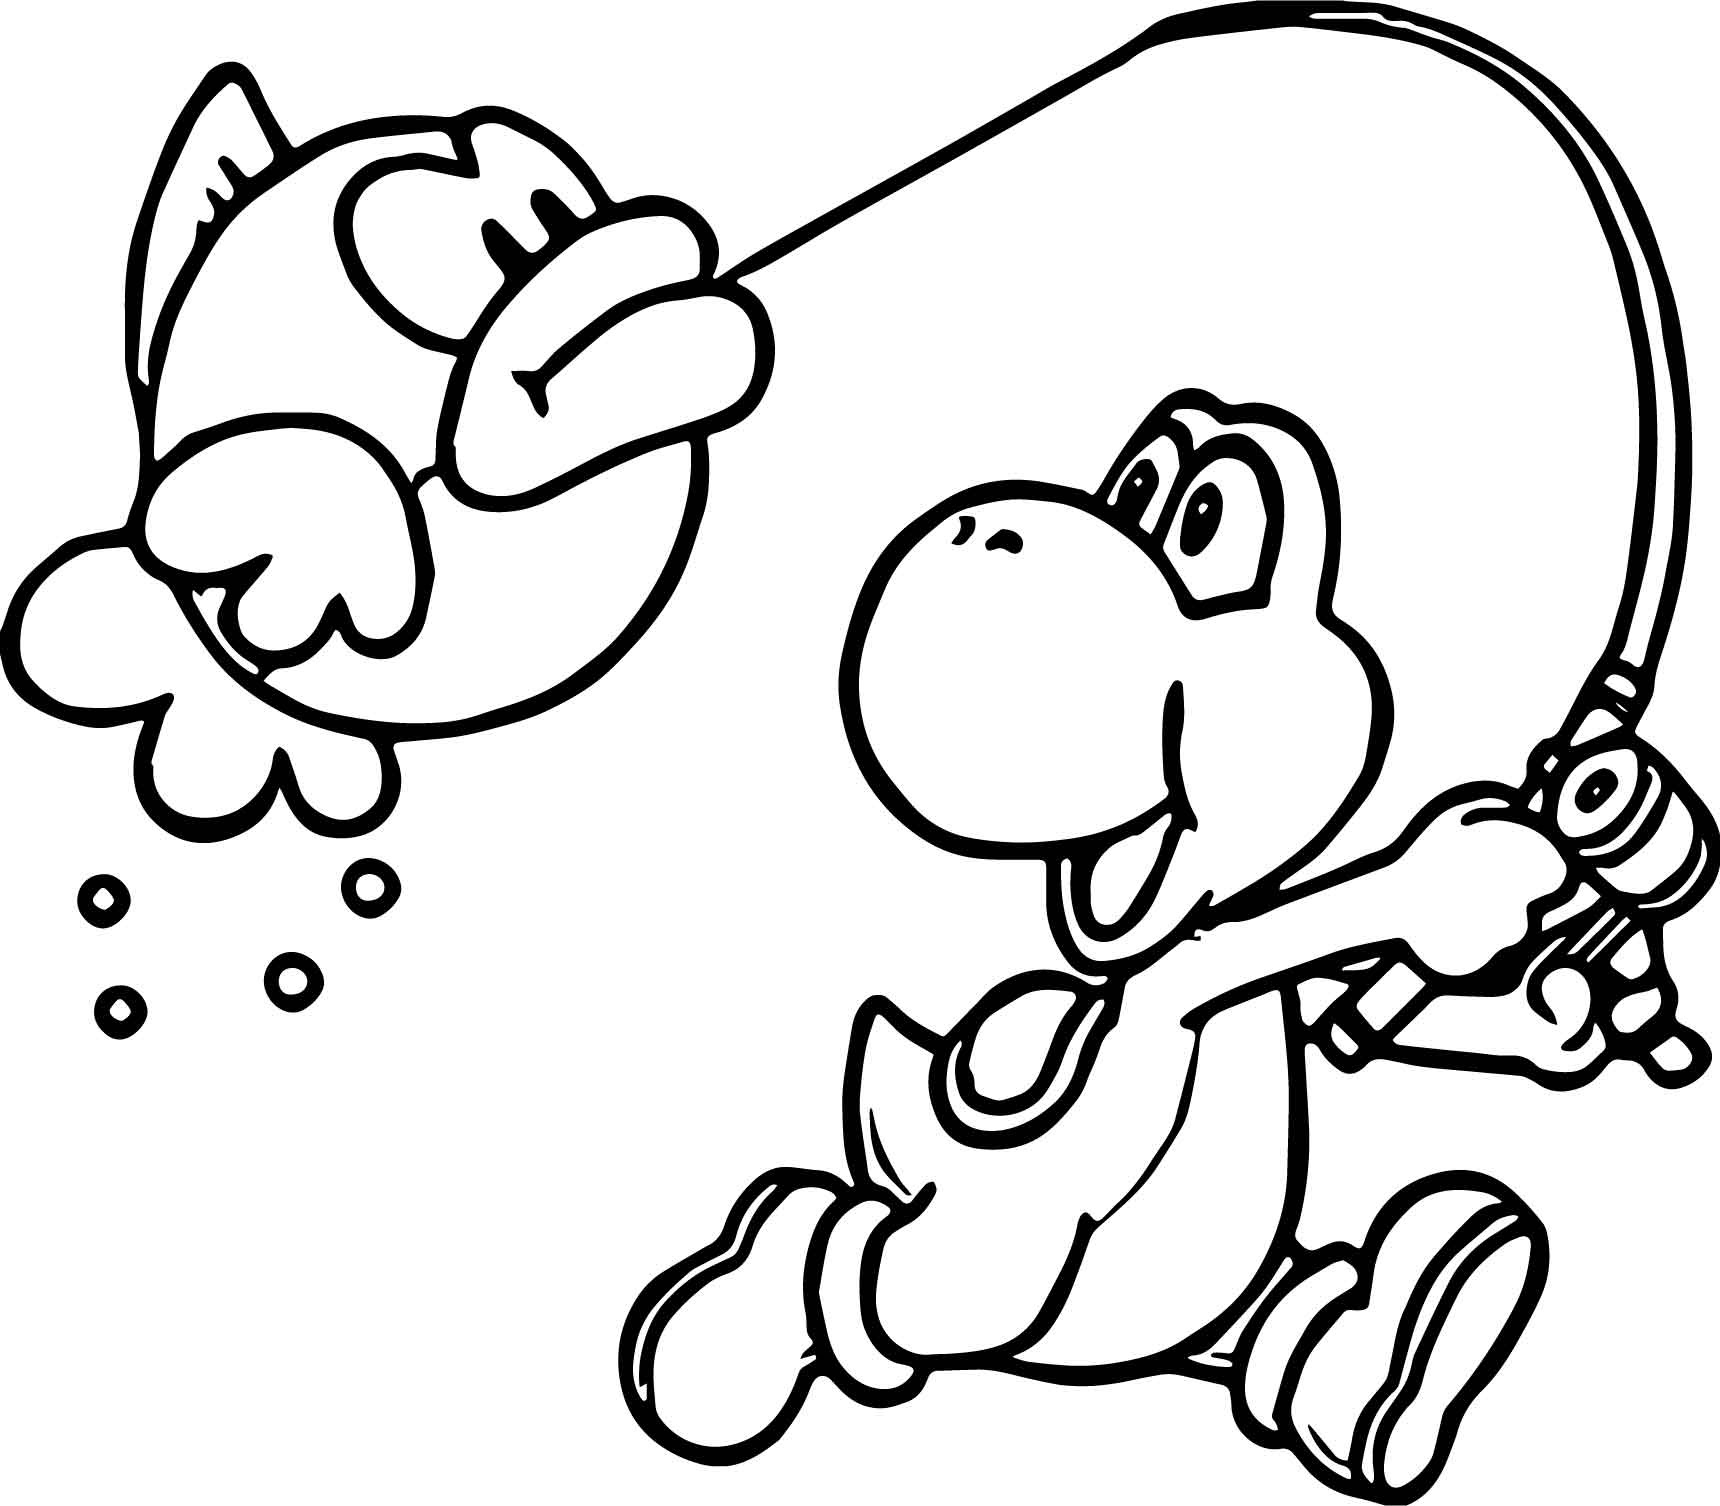 Yoshi Nintendo Catch Fish Coloring Page